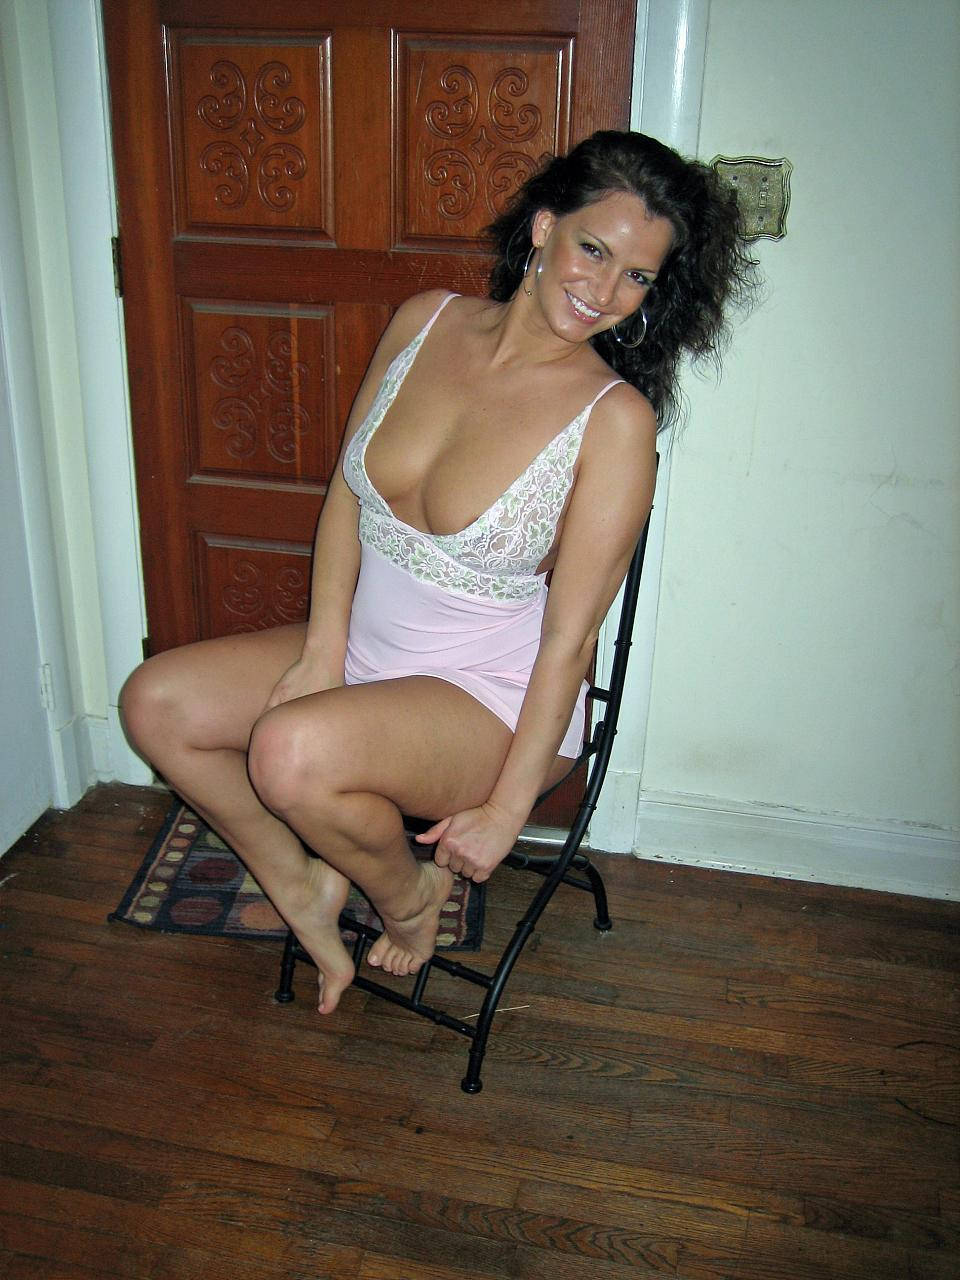 Milf Photograph Gallery